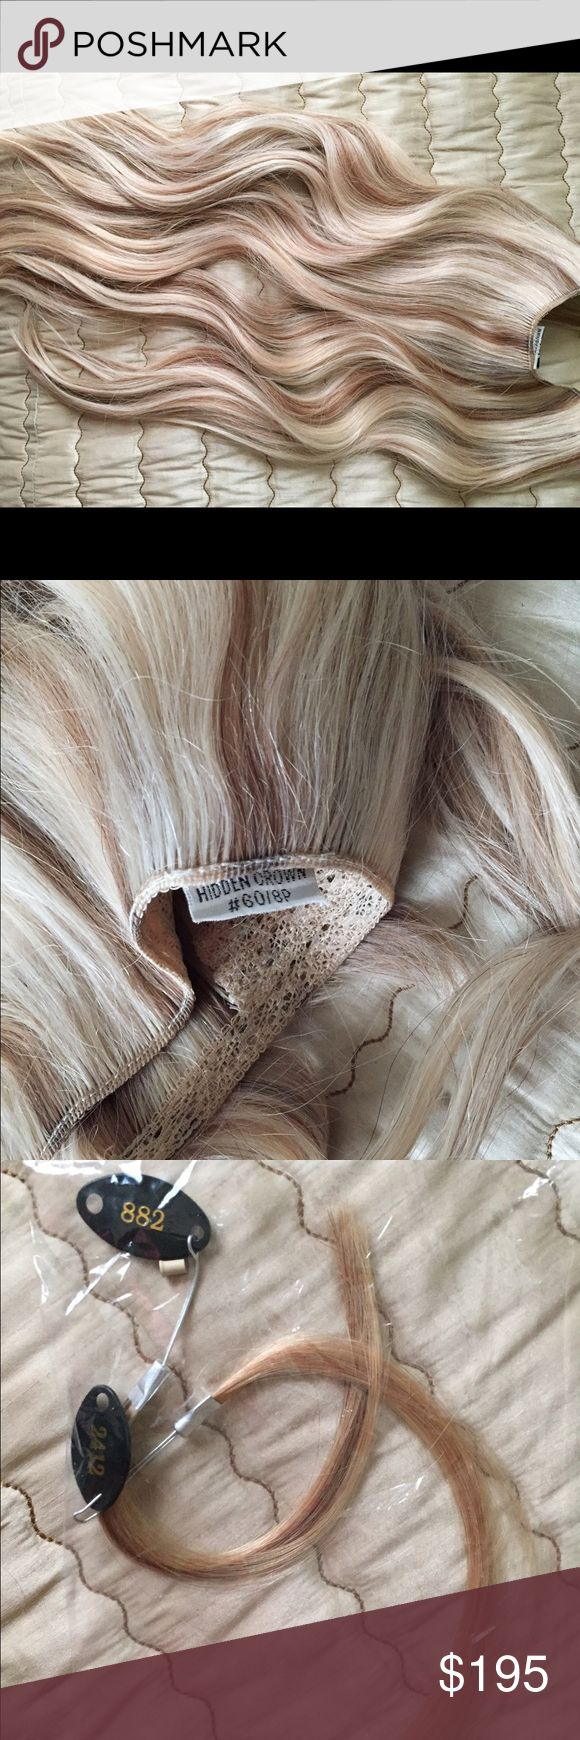 167 best hair extensions images on pinterest hairstyles hidden crown hair halo extensions i am in love with these but when i put then on they are too thick and long for my hair type i have fine hair pmusecretfo Gallery